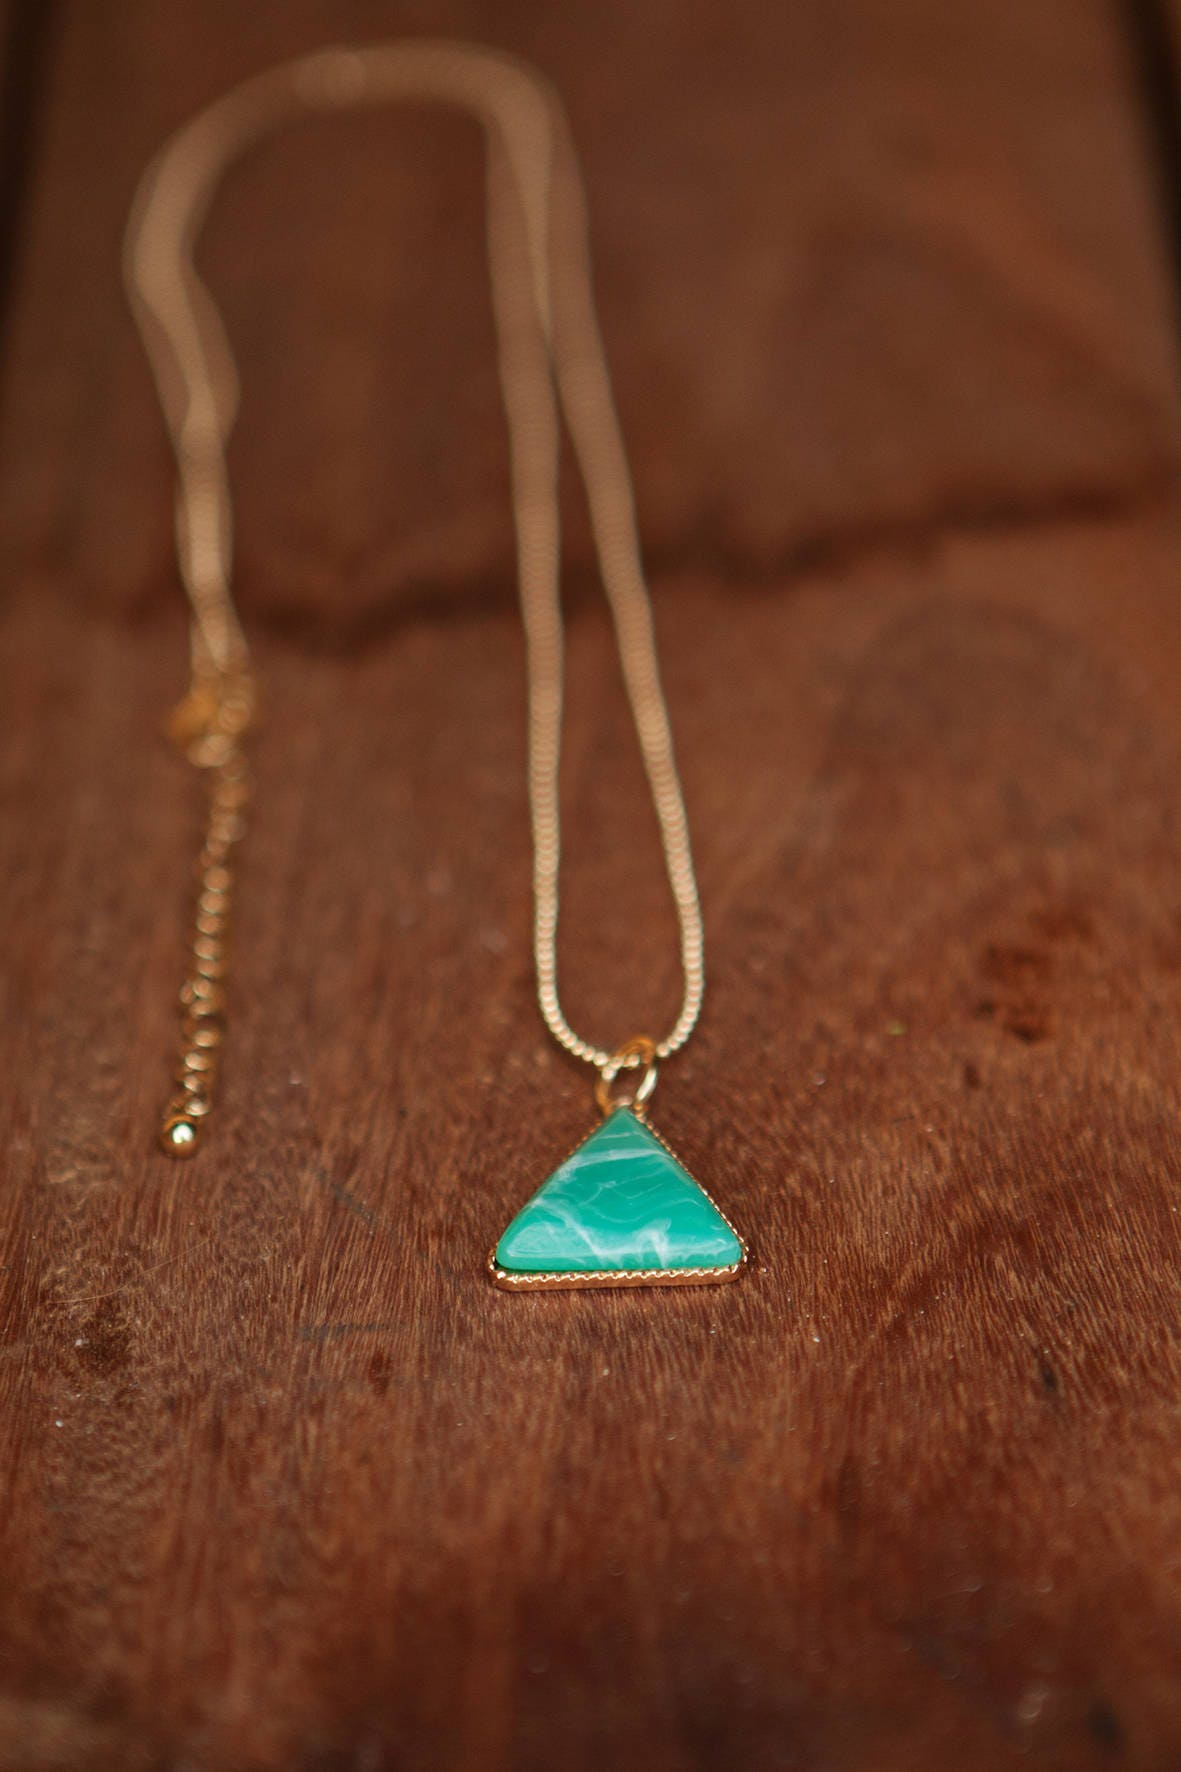 Triangular necklace green pendant necklace simple necklace long triangular necklace green pendant necklace simple necklace long necklace gold long necklace aloadofball Choice Image